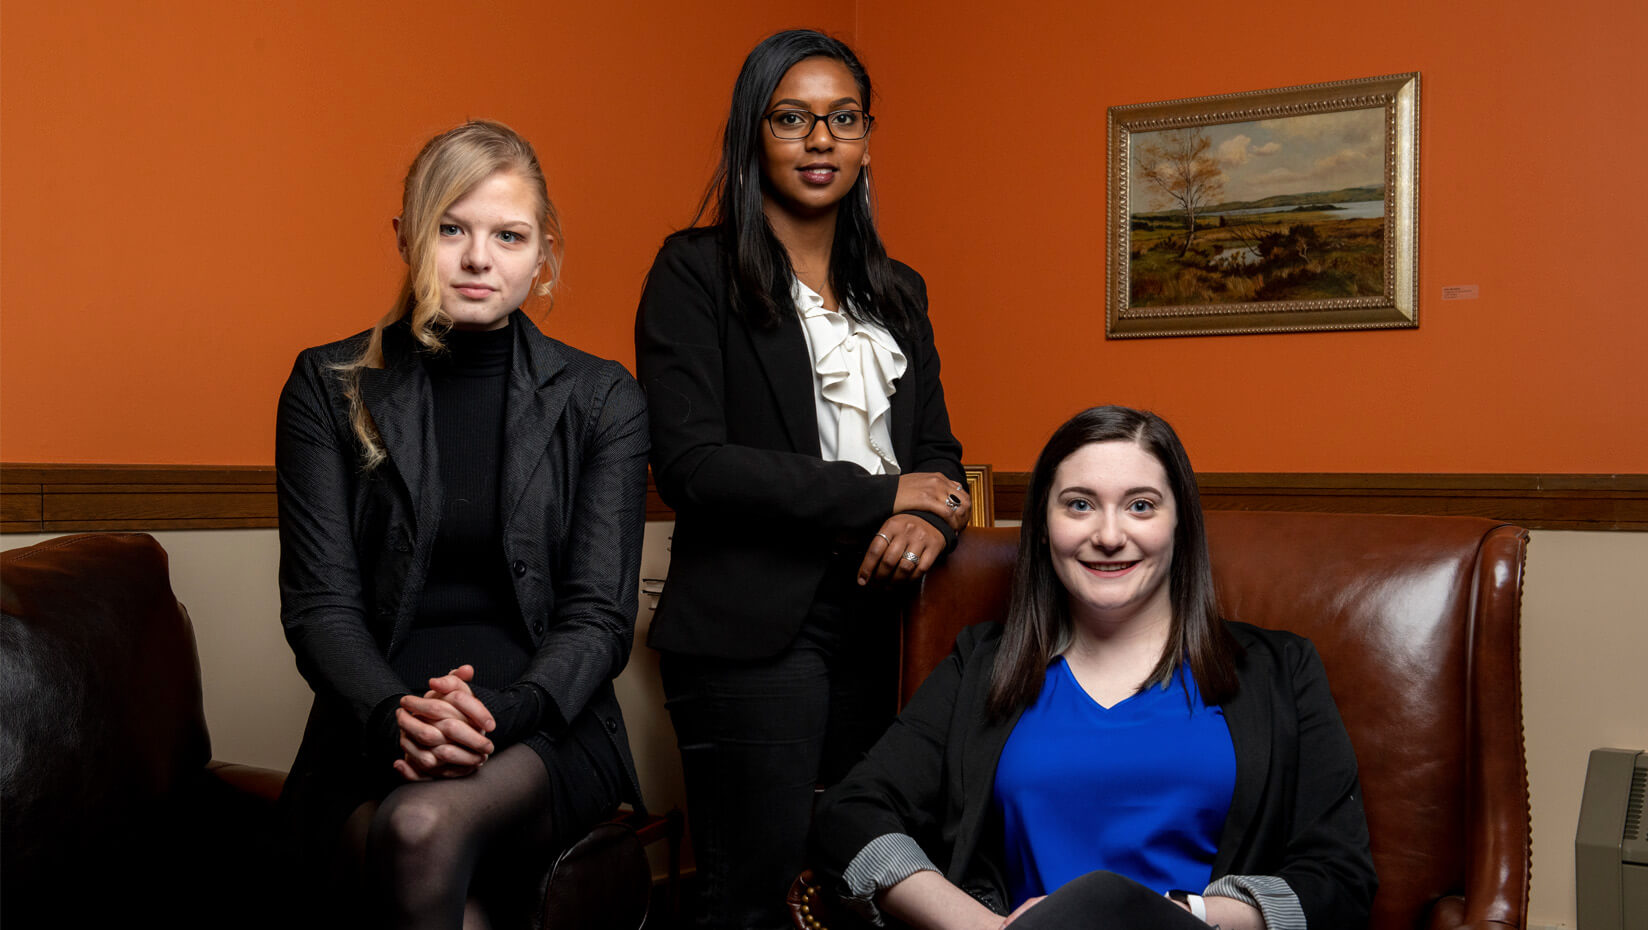 Clement and Linda McGillicuddy Humanities Center undergraduate fellows in spring–fall 2020 are, from left, Ivy Flessen, Leela Stockley and Bria Lamonica.